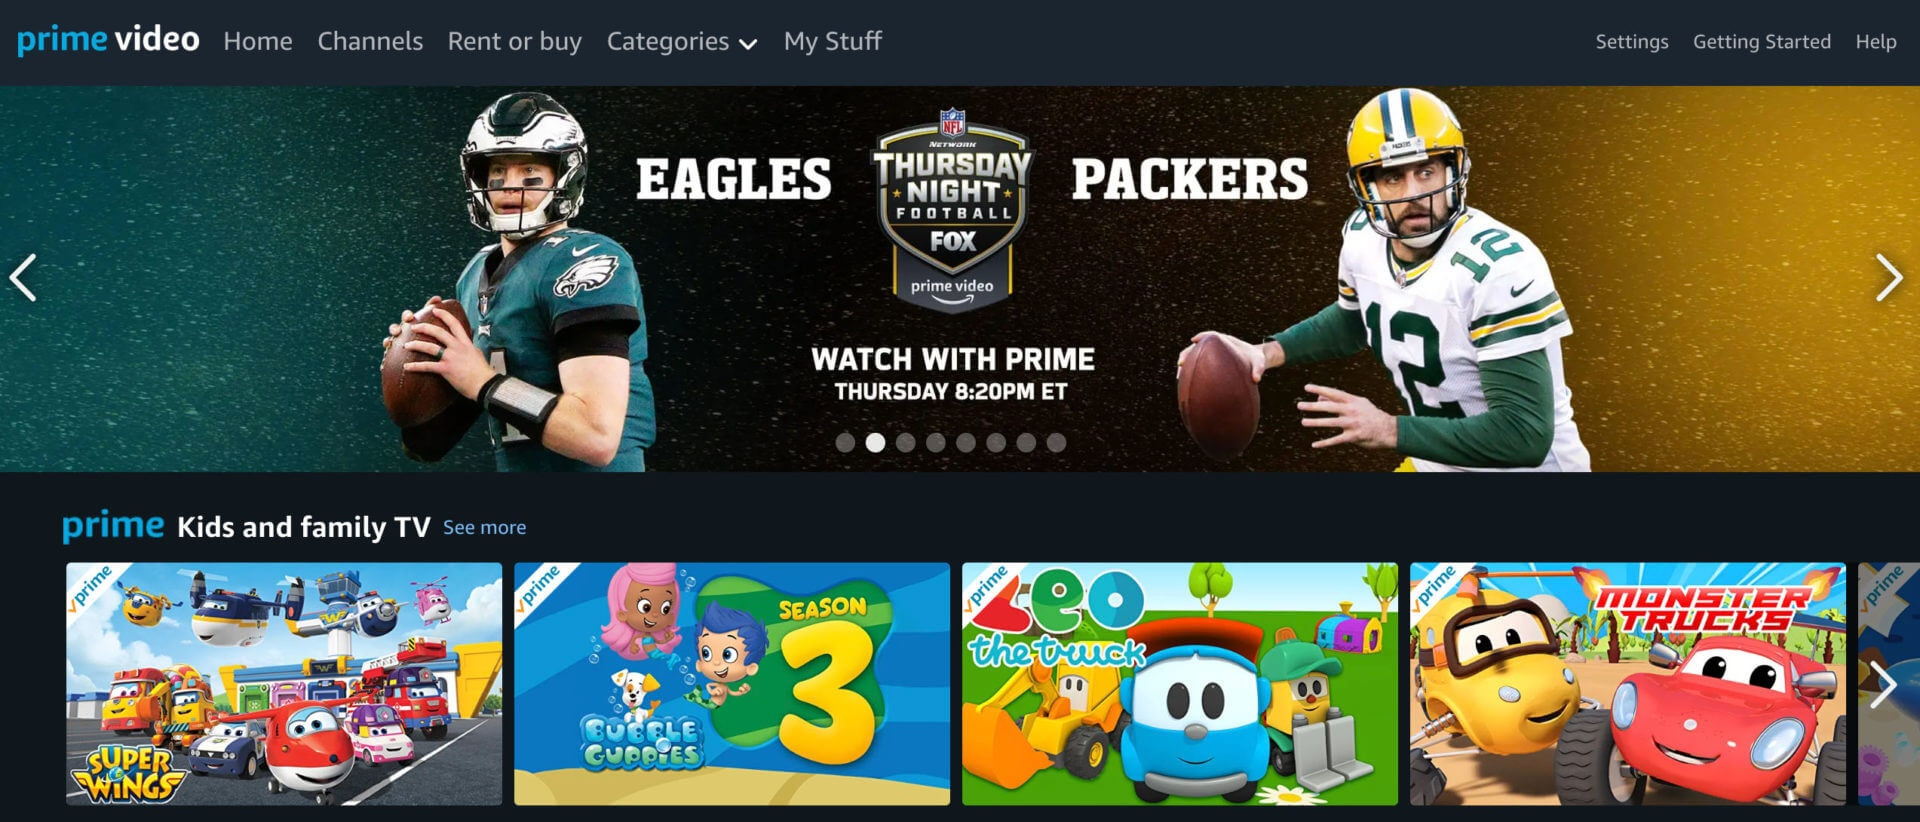 how-to-watch eagles vs packers live stream amazon prime video